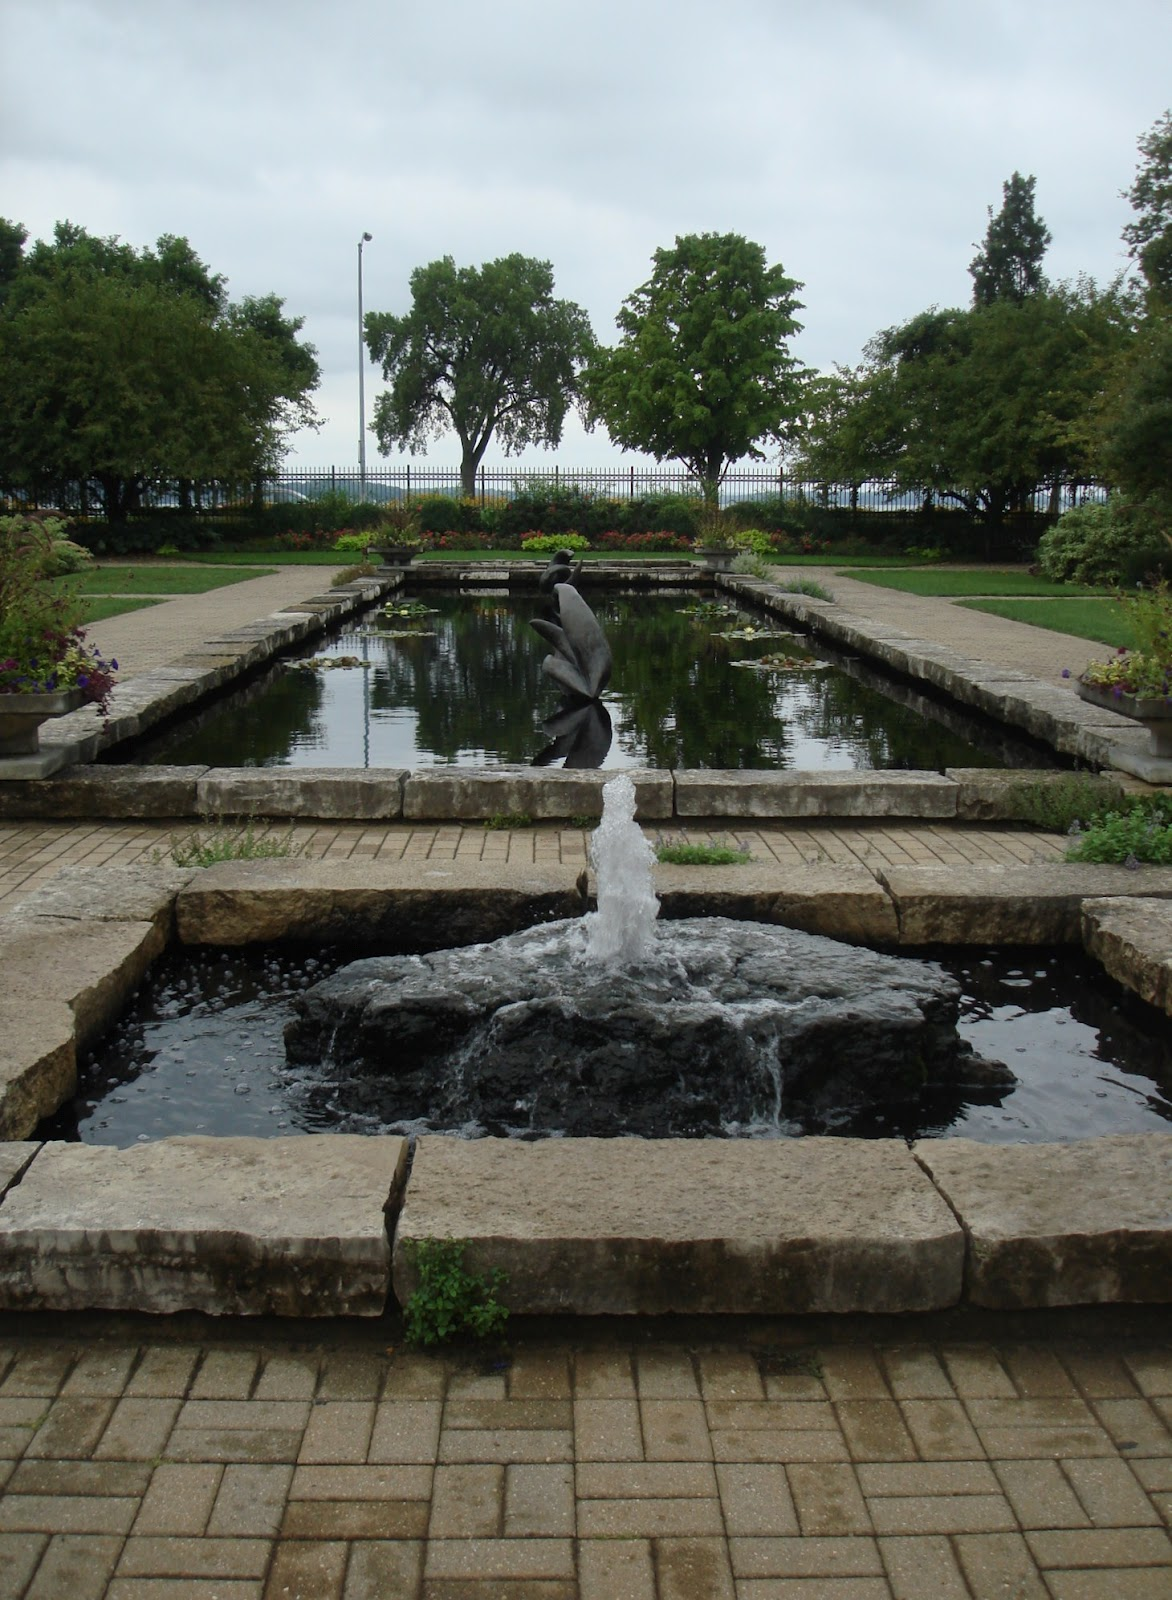 Olbrich Features 16 Acres Of Outdoor Gardens Featuring Stunning Landscapes.  Admission Is Free To The Outdoor Gardens. Definitely A Lovely Place To  Stroll.